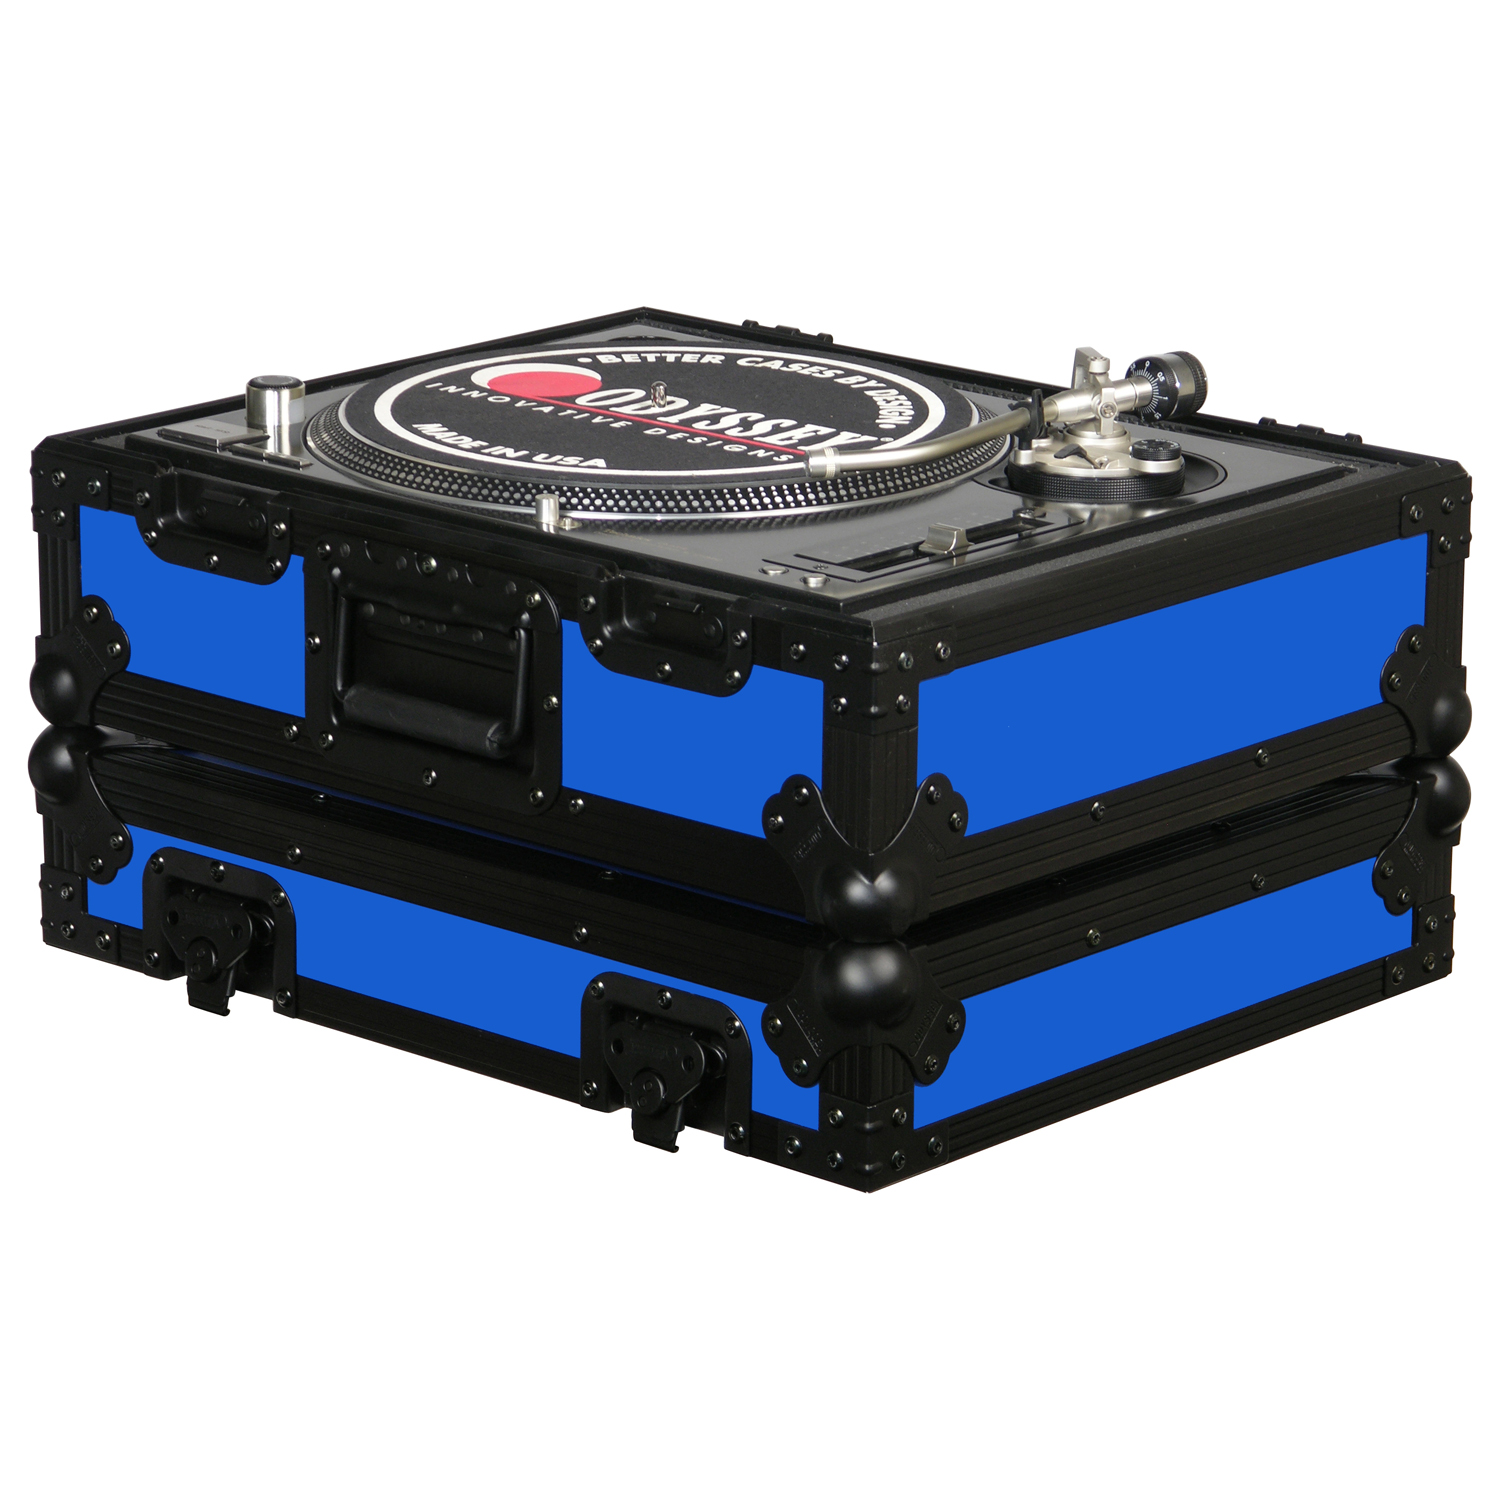 Blue universal turntable case